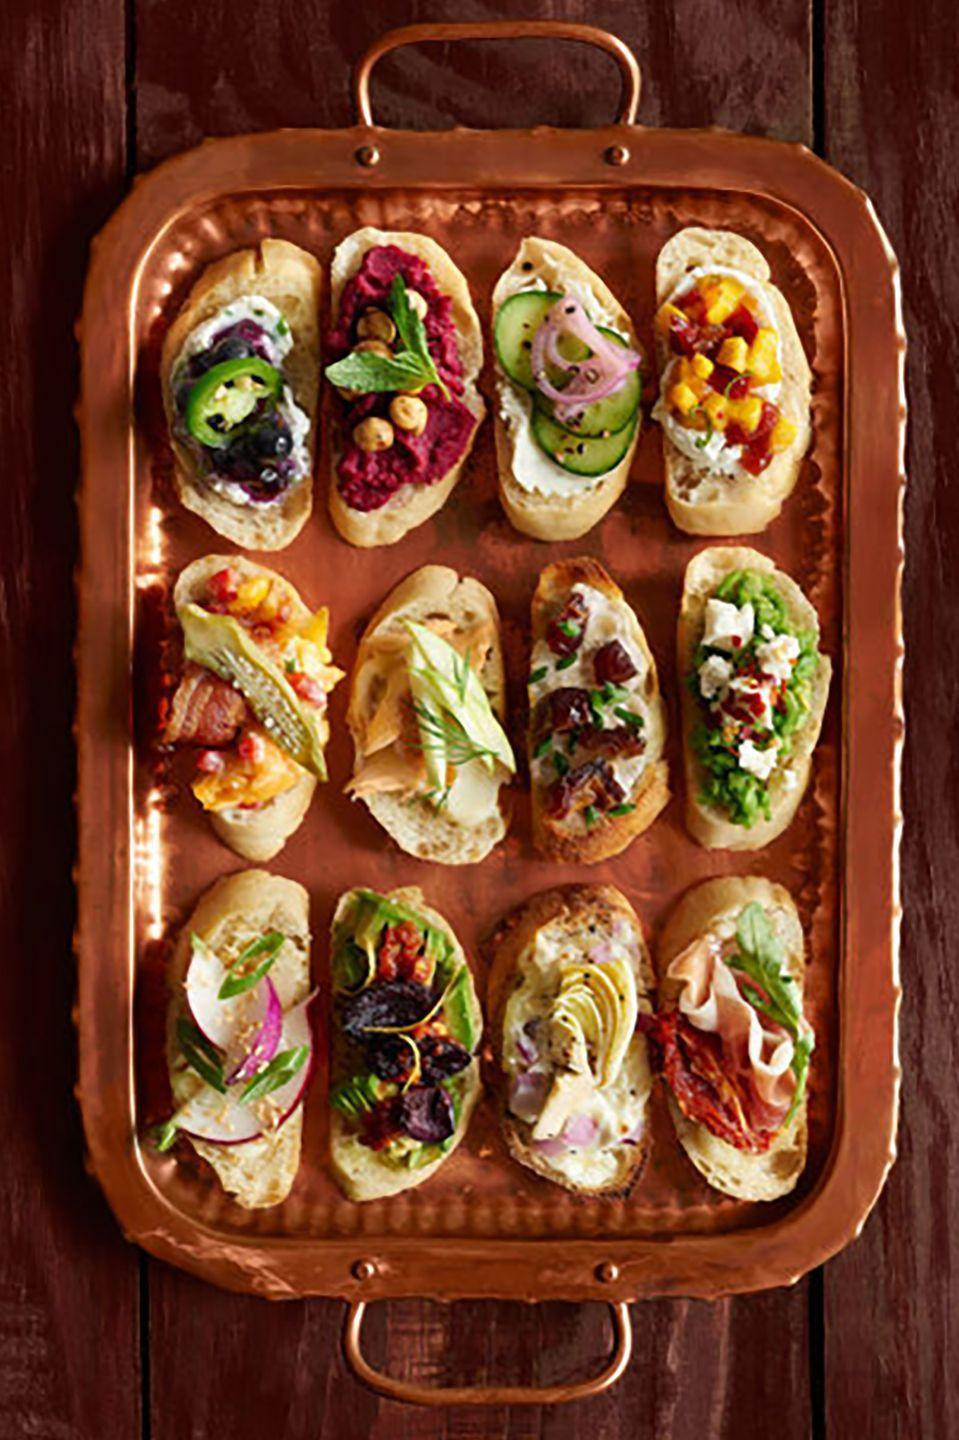 """<p>Give guests something to graze on as they dance the night away. Guests can mix and match these 12 different varieties of two-bite crostini. </p><p><strong><a href=""""https://www.countryliving.com/food-drinks/g2706/crostini-thanksgiving-recipes/"""" rel=""""nofollow noopener"""" target=""""_blank"""" data-ylk=""""slk:Get the recipe"""" class=""""link rapid-noclick-resp"""">Get the recipe</a>.</strong><br></p>"""